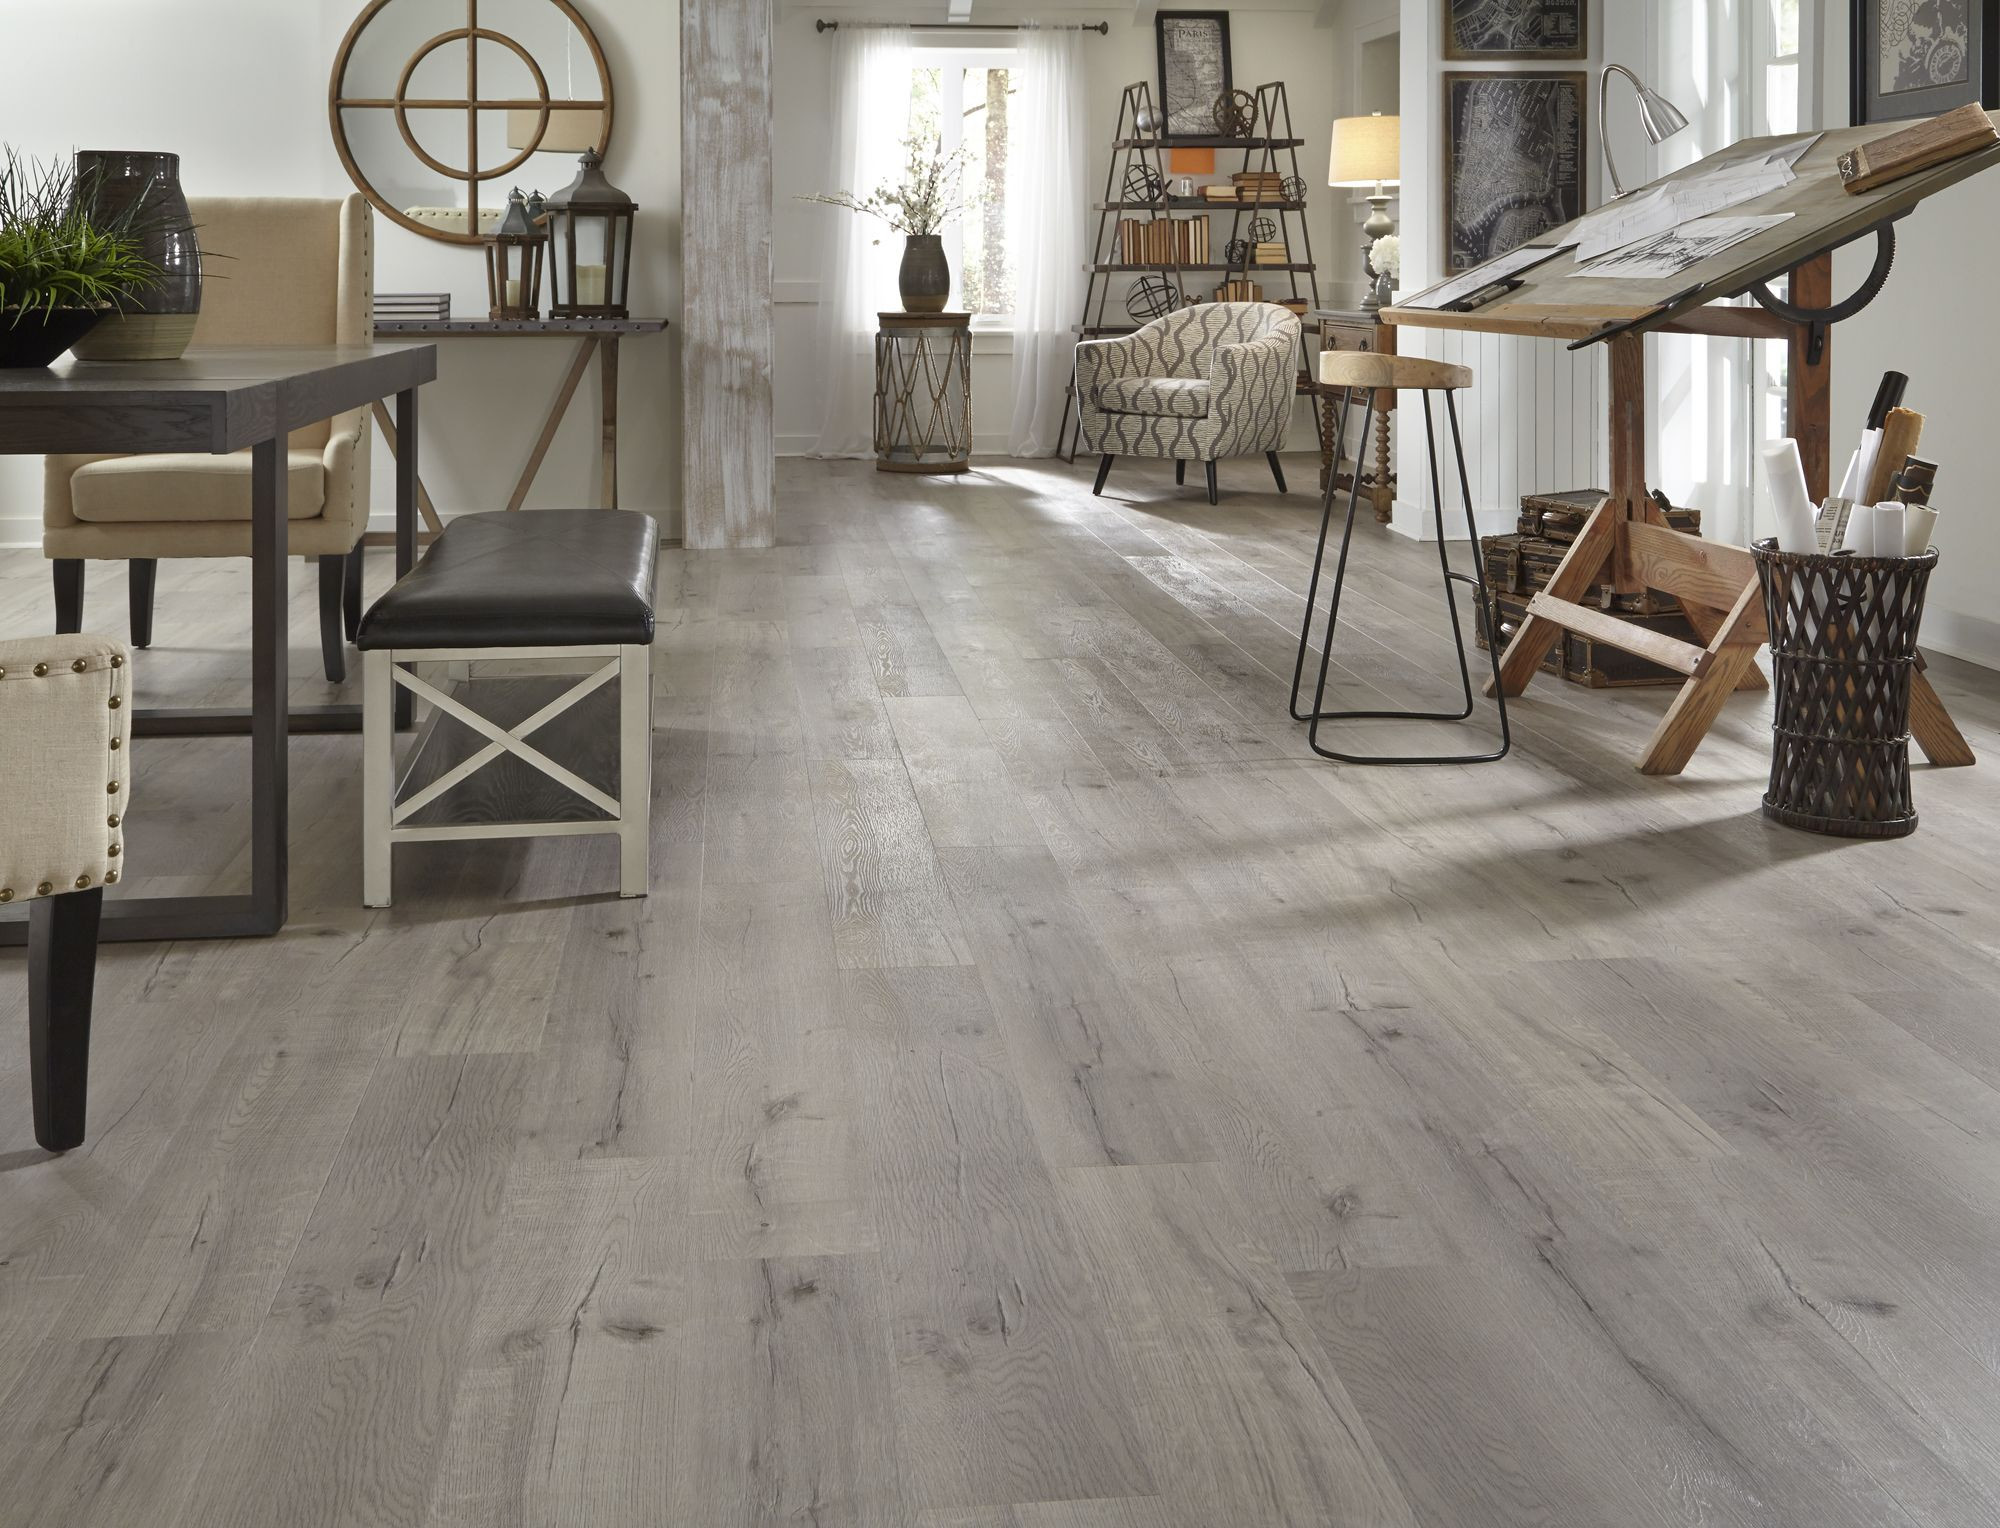 Hardwood Flooring Glasgow Of This Fall Flooring Season See 100 New Flooring Styles Like Driftwood for This Fall Flooring Season See 100 New Flooring Styles Like Driftwood Hickory Evp Its Part Of A New Line Of Waterproof Flooring thats Ideal for Any Space